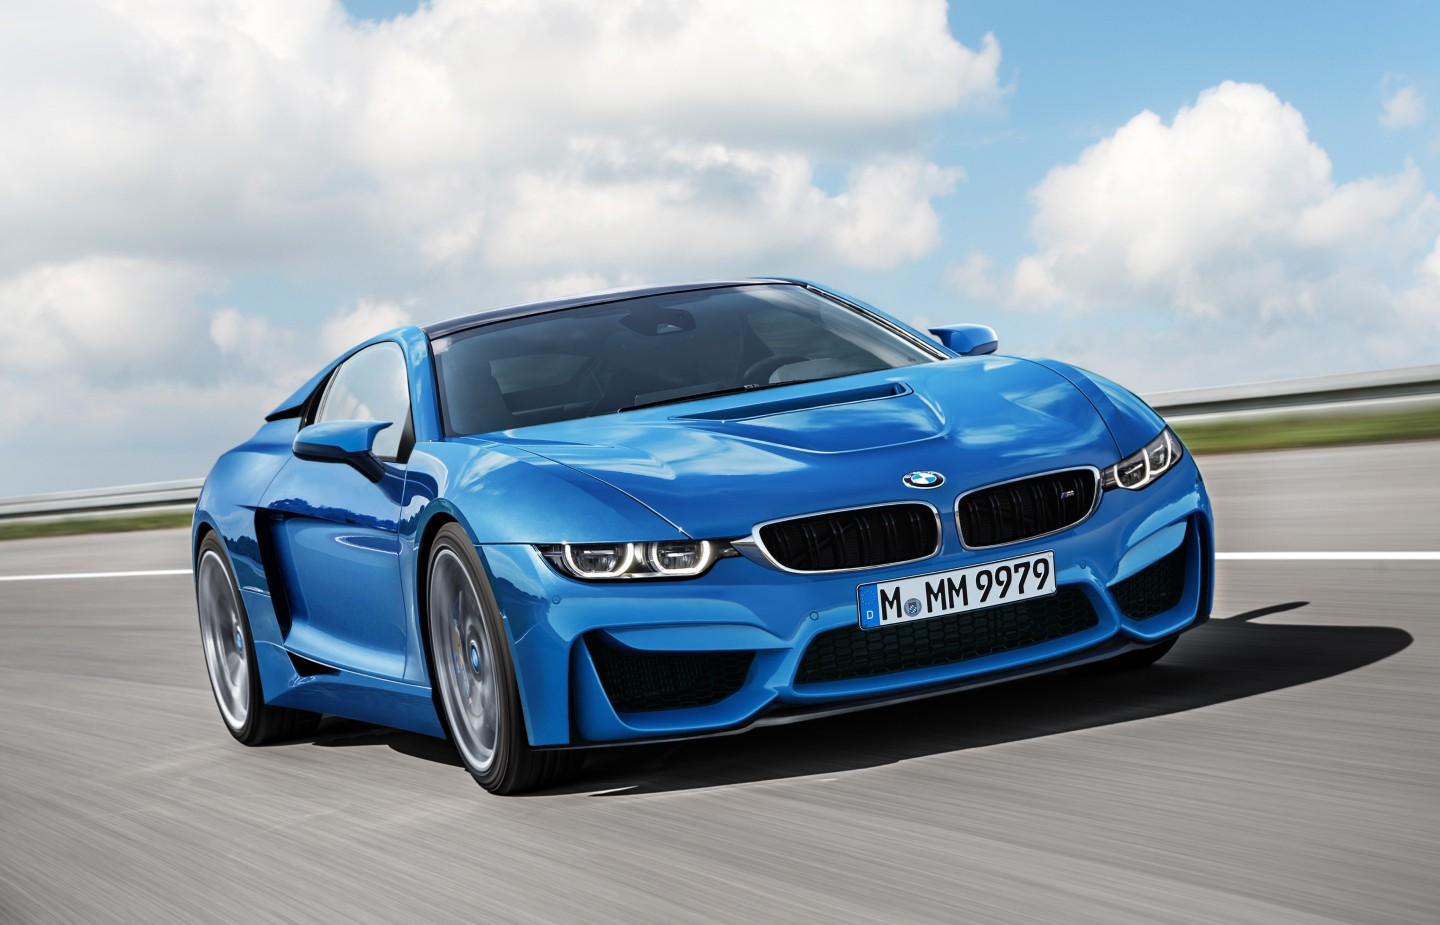 Bmw I8 M Rumors Denied, Once Again Autoevolution